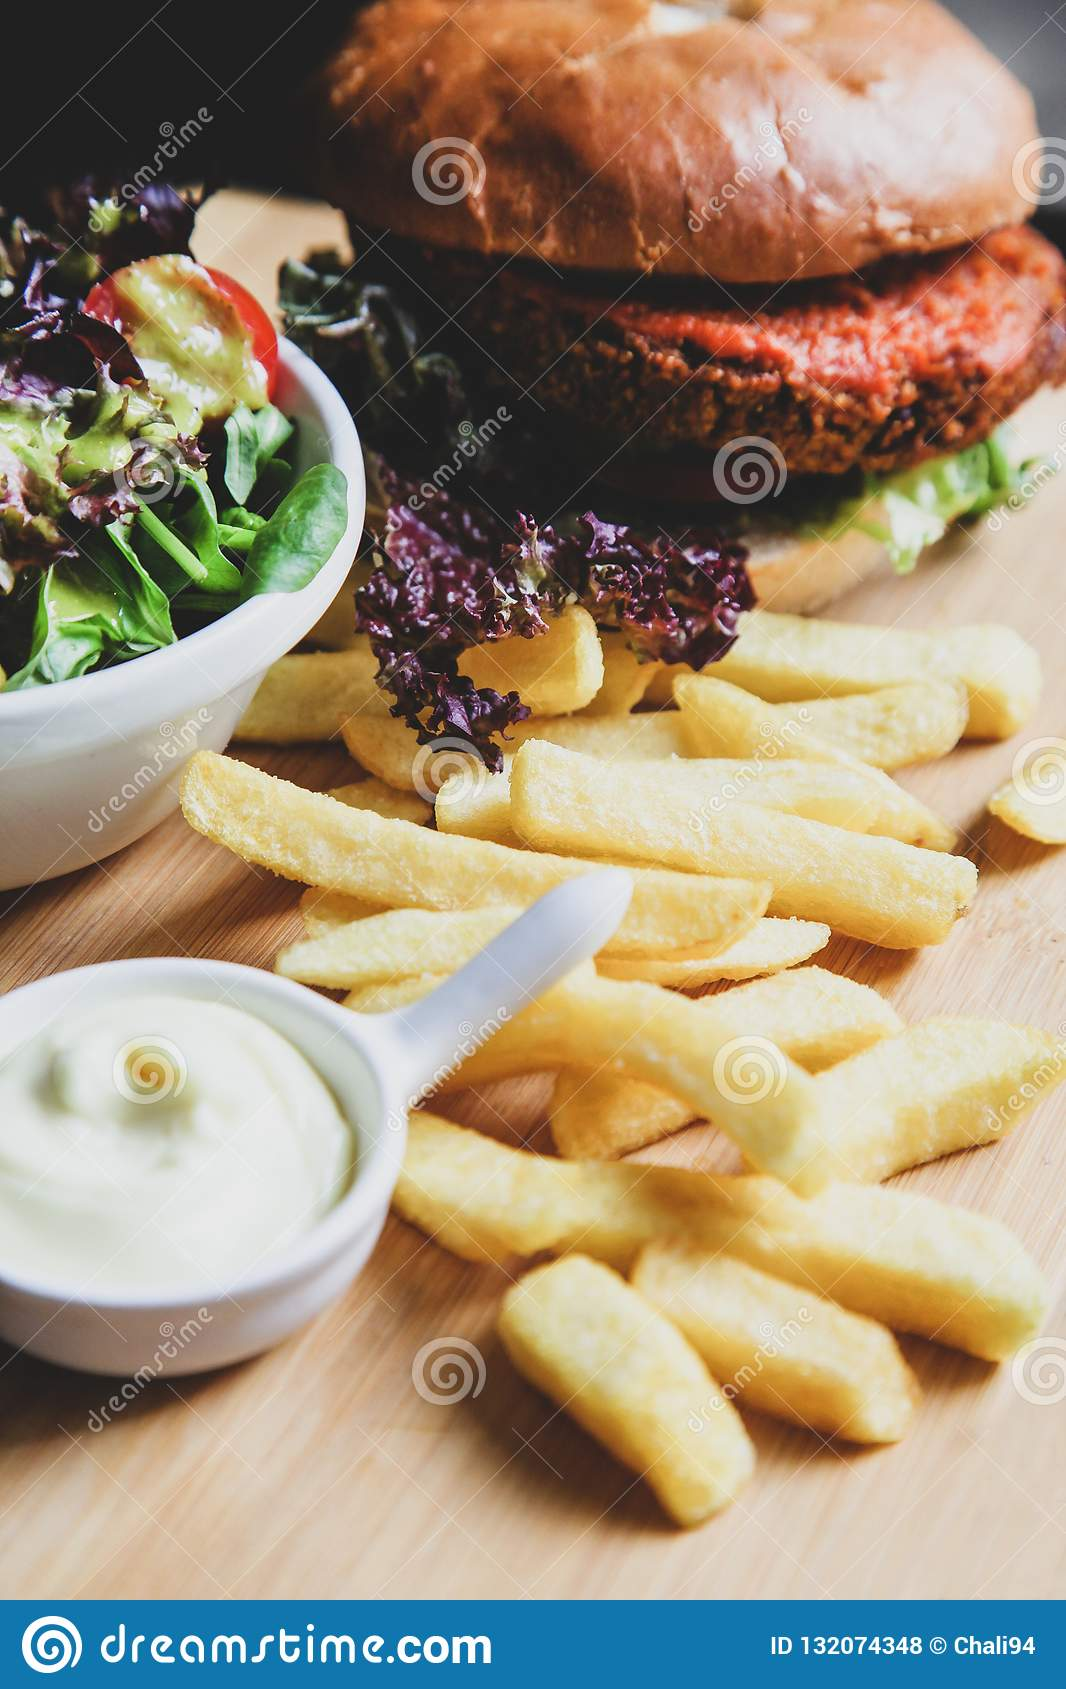 Vegan burger with salad, and french fries